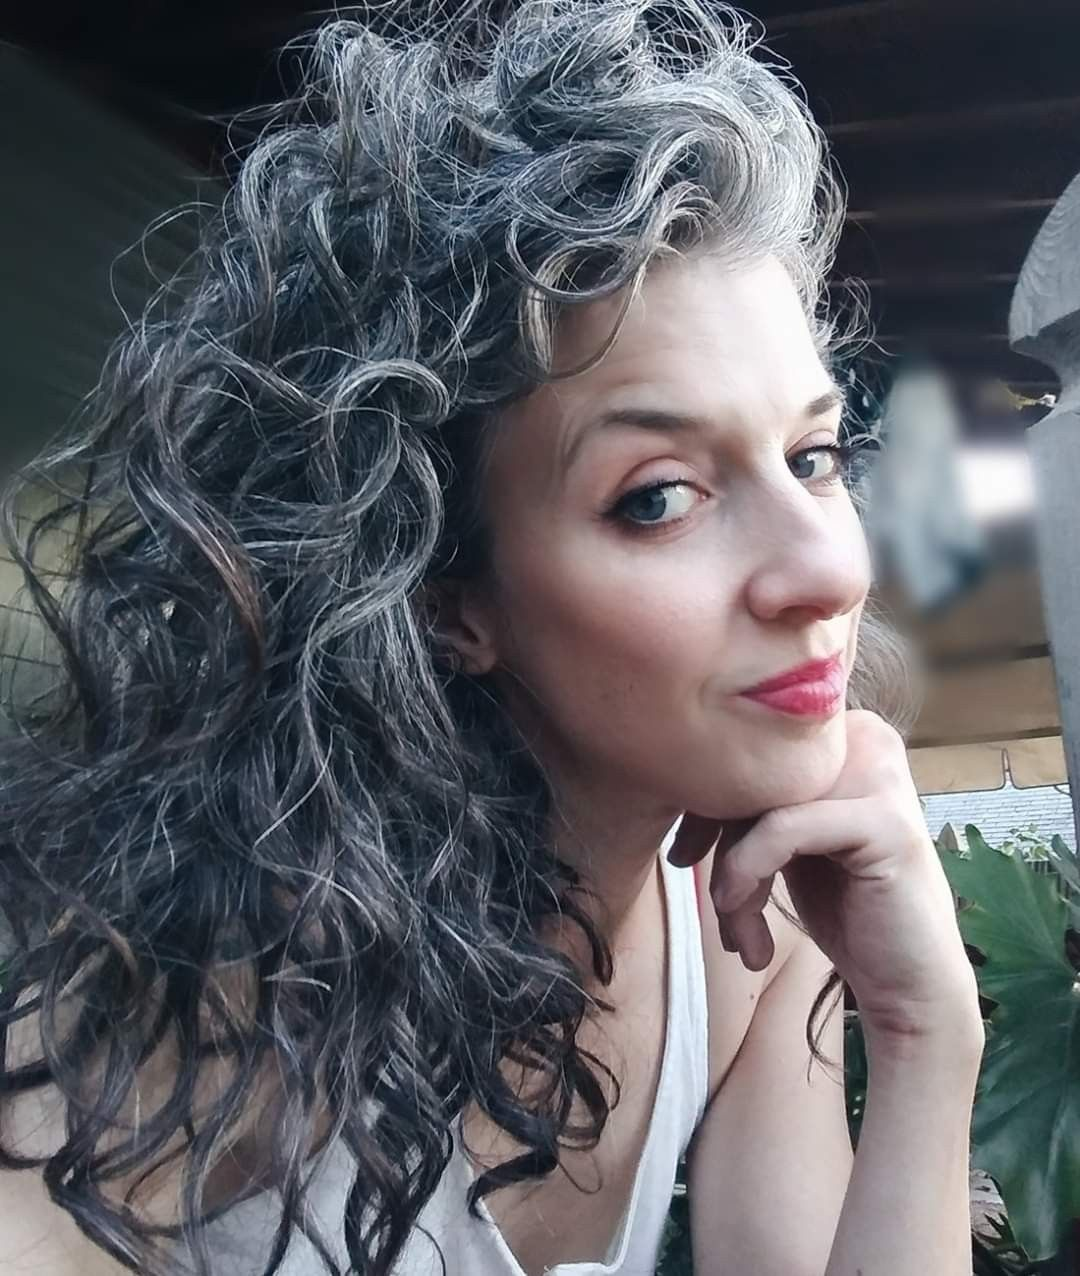 Pin By Maria On Gray Hair In 2020 Transition To Gray Hair Grey Curly Hair Long Gray Hair